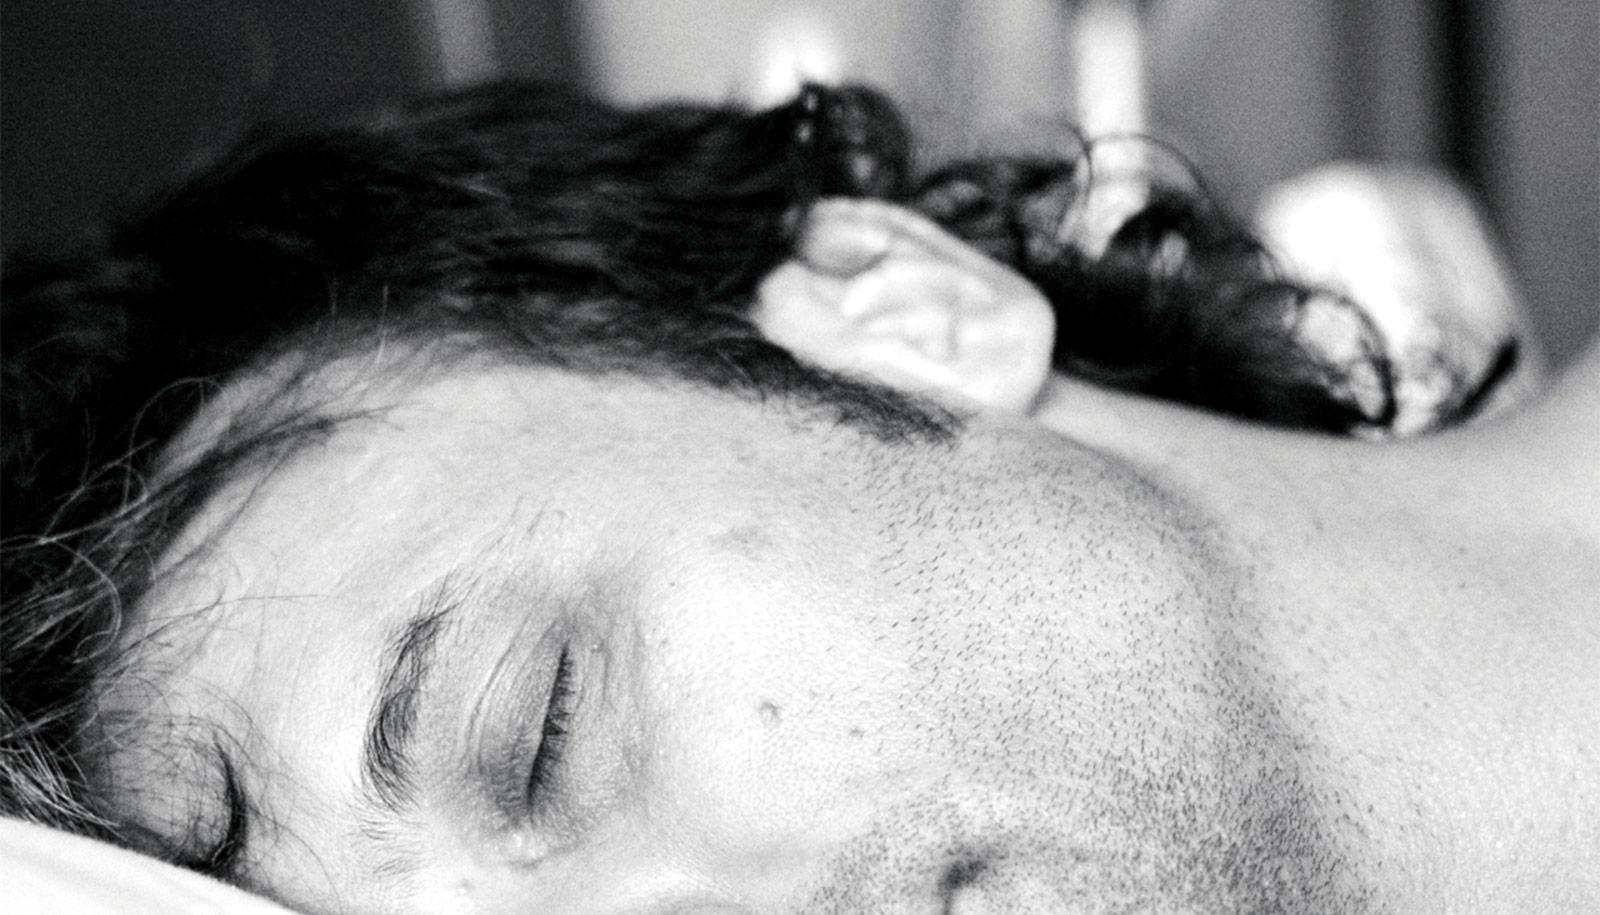 A man sleeping with half his face out of frame